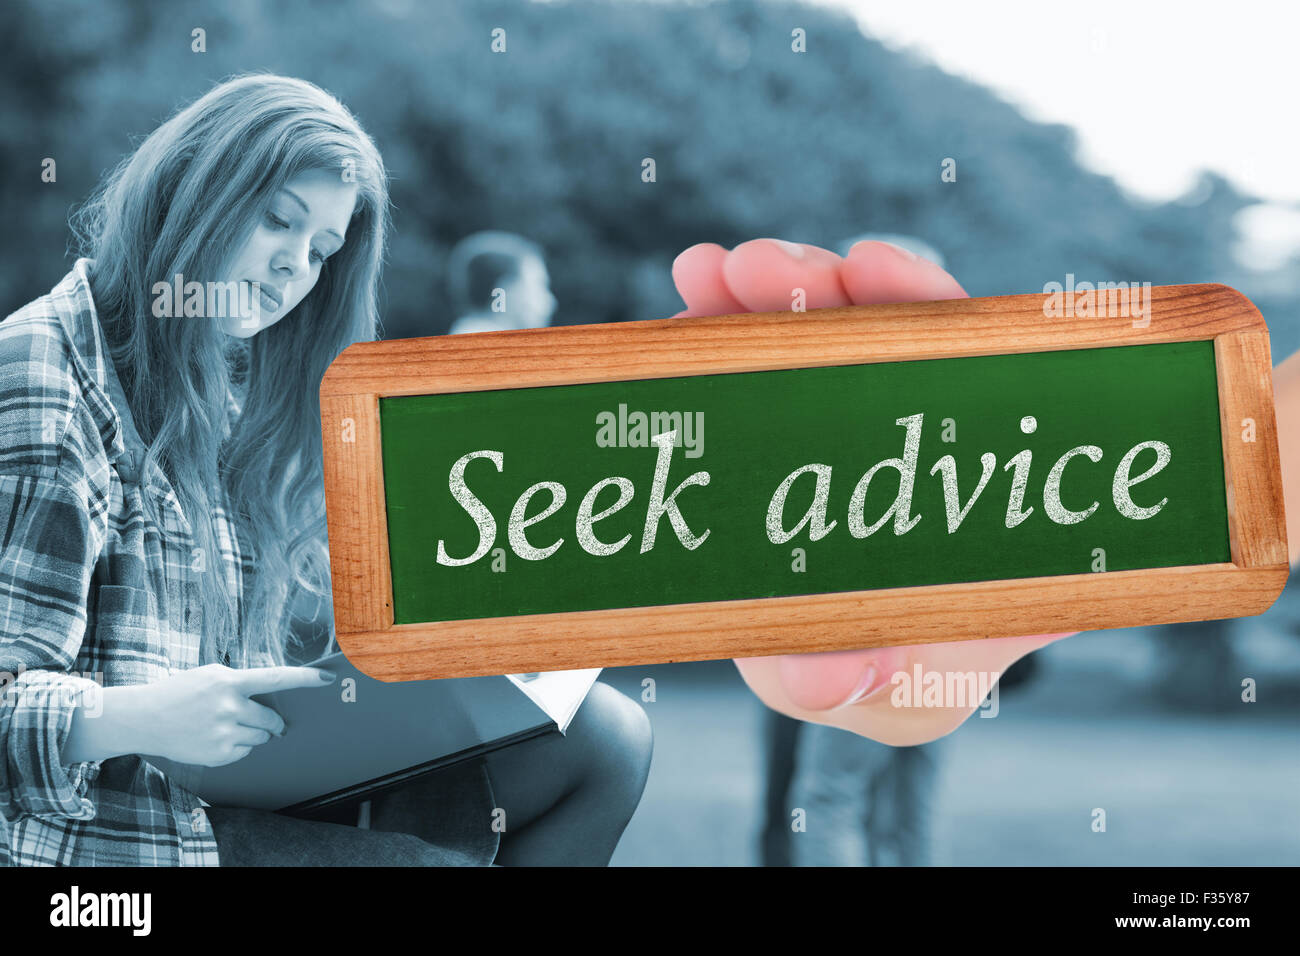 Seek advice against pretty student studying outside on campus - Stock Image